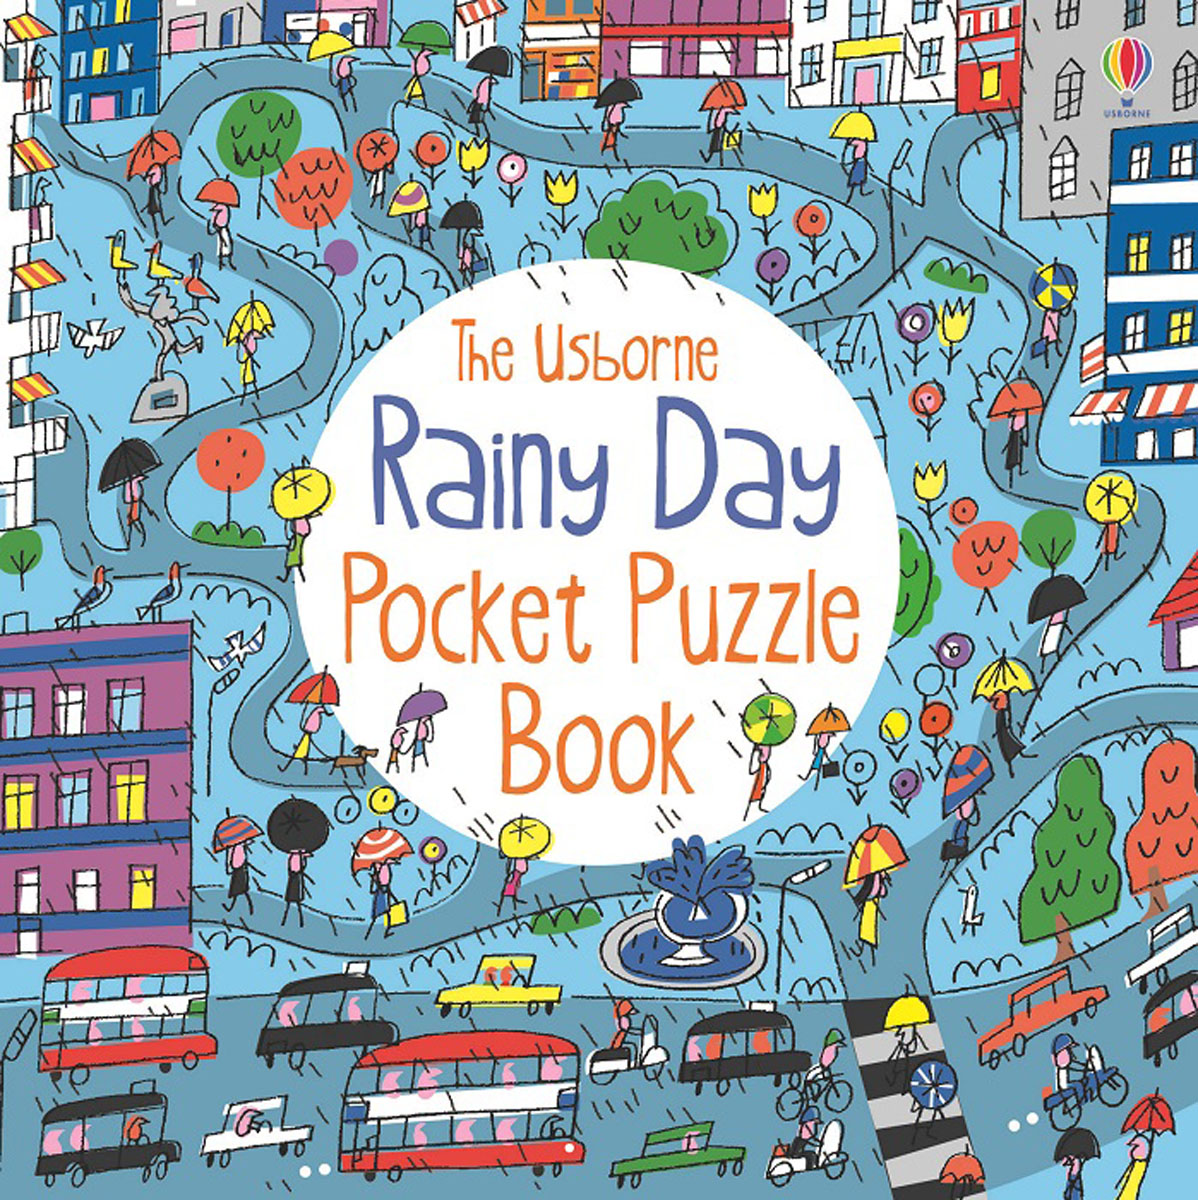 Rainy Day Pocket Puzzle Book ready for fce upper intermediate teacher s book